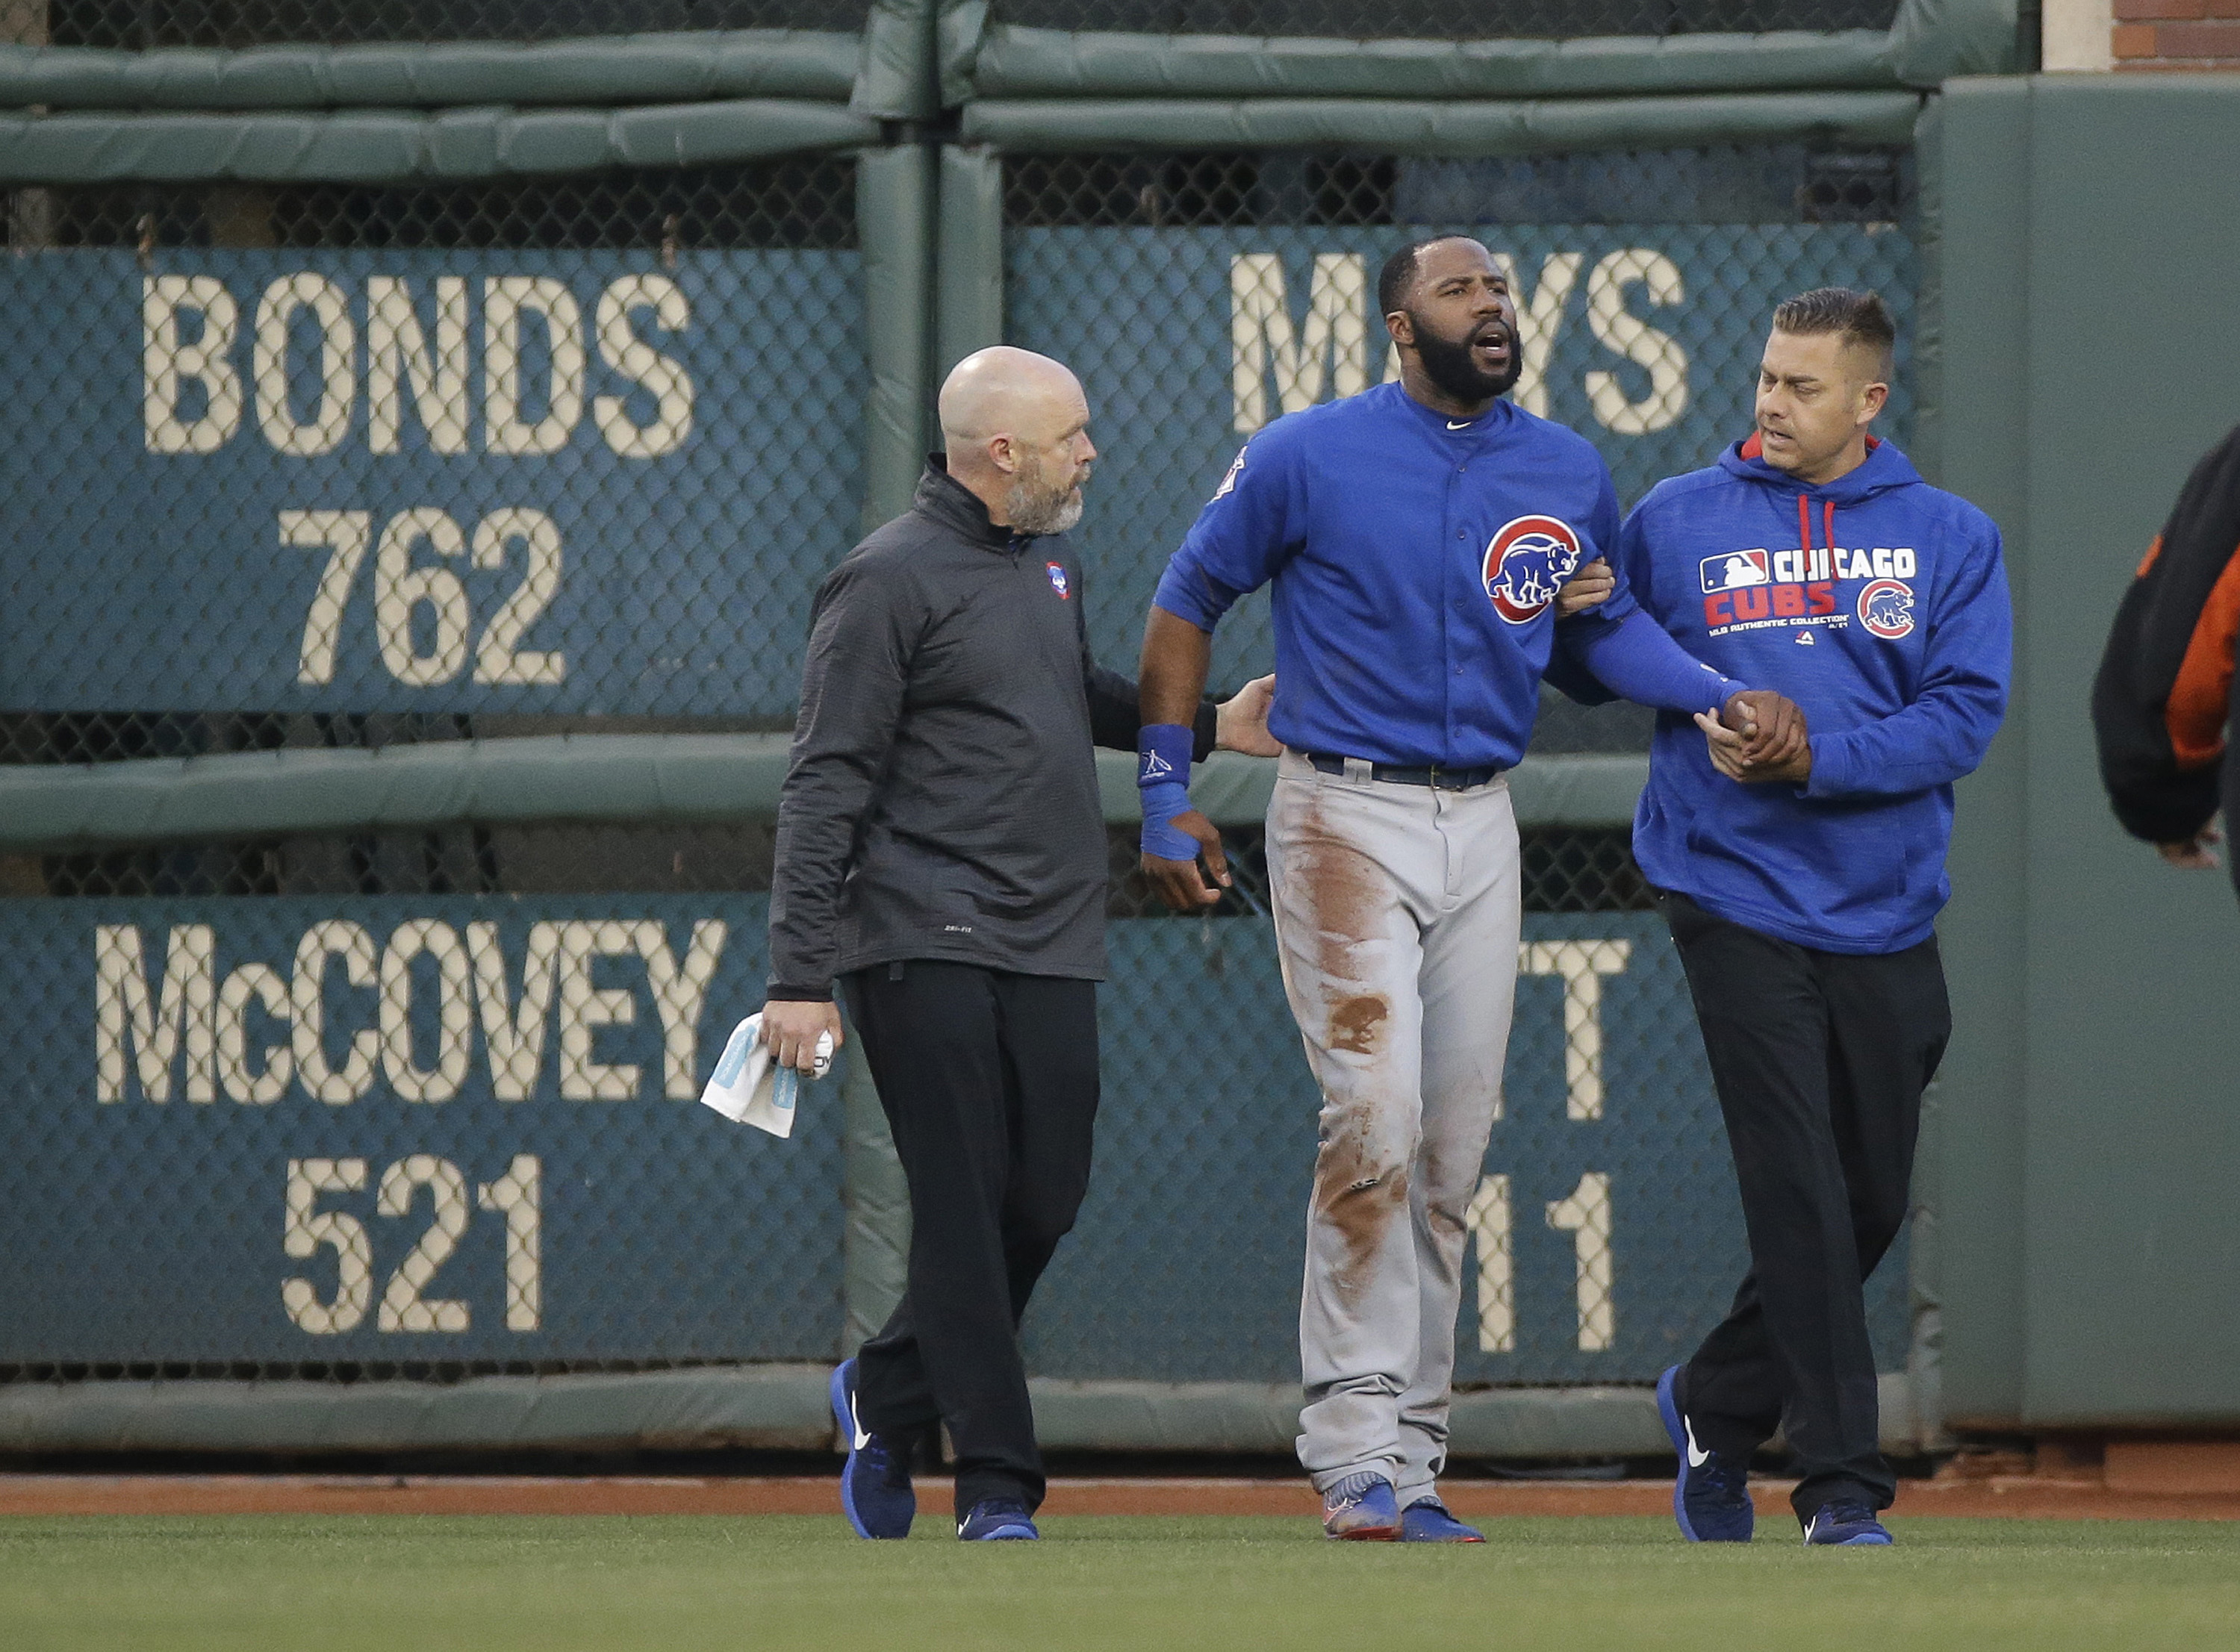 Chicago Cubs right fielder Jason Heyward is helped off the field after catching a fly ball hit by San Francisco Giants' Denard Span and crashing into the outfield wall during the first inning of their baseball game Friday, May 20, 2016, in San Francisco.